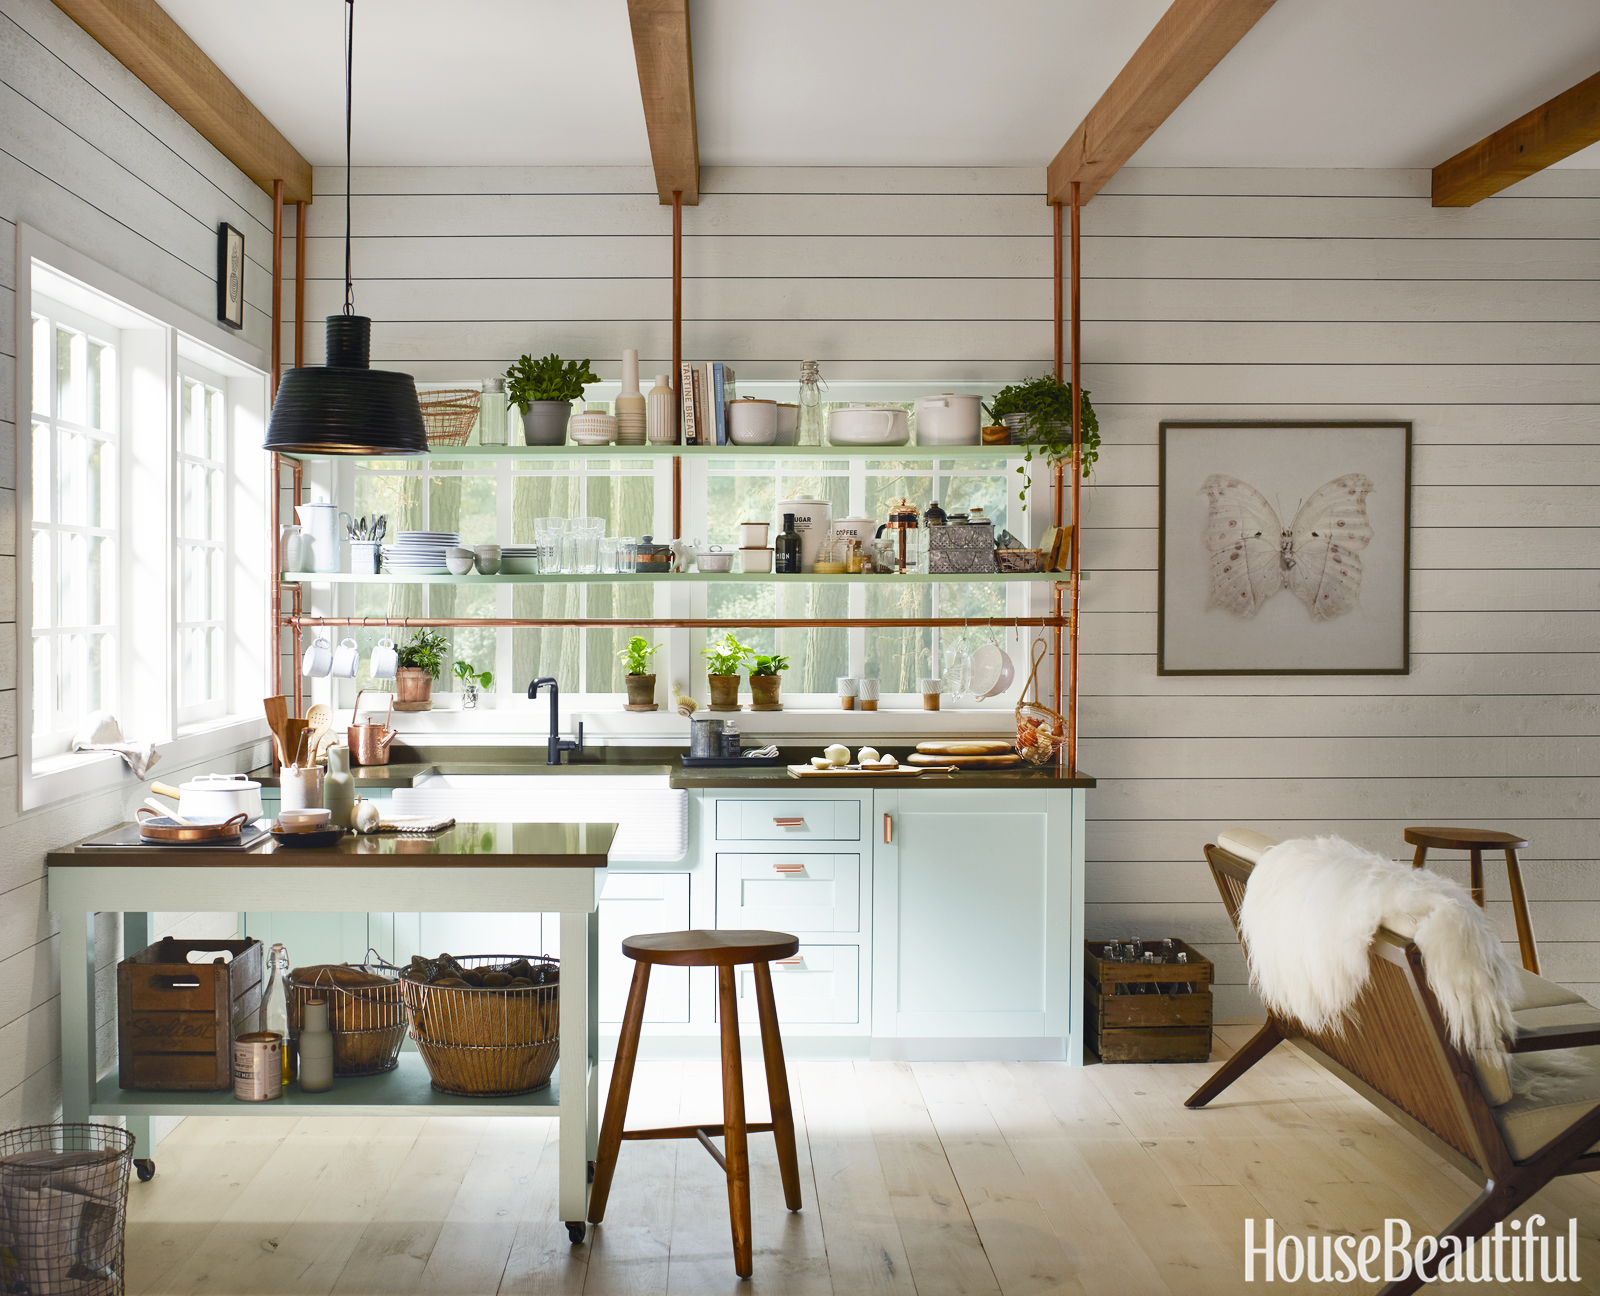 Tiny kitchen designed by kim lewis - Beautiful small spaces pict ...